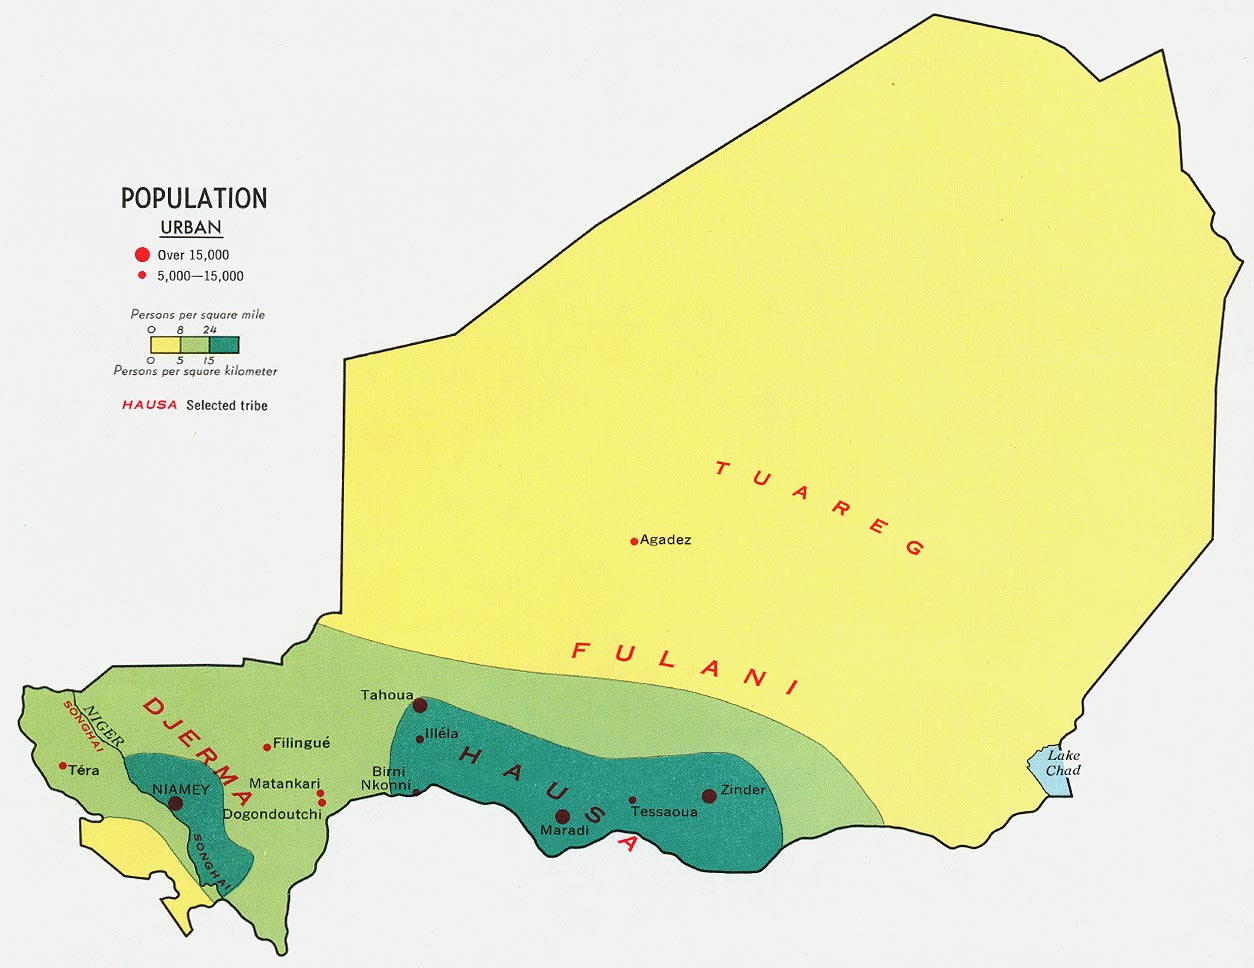 Map showing population density and distribution in Niger